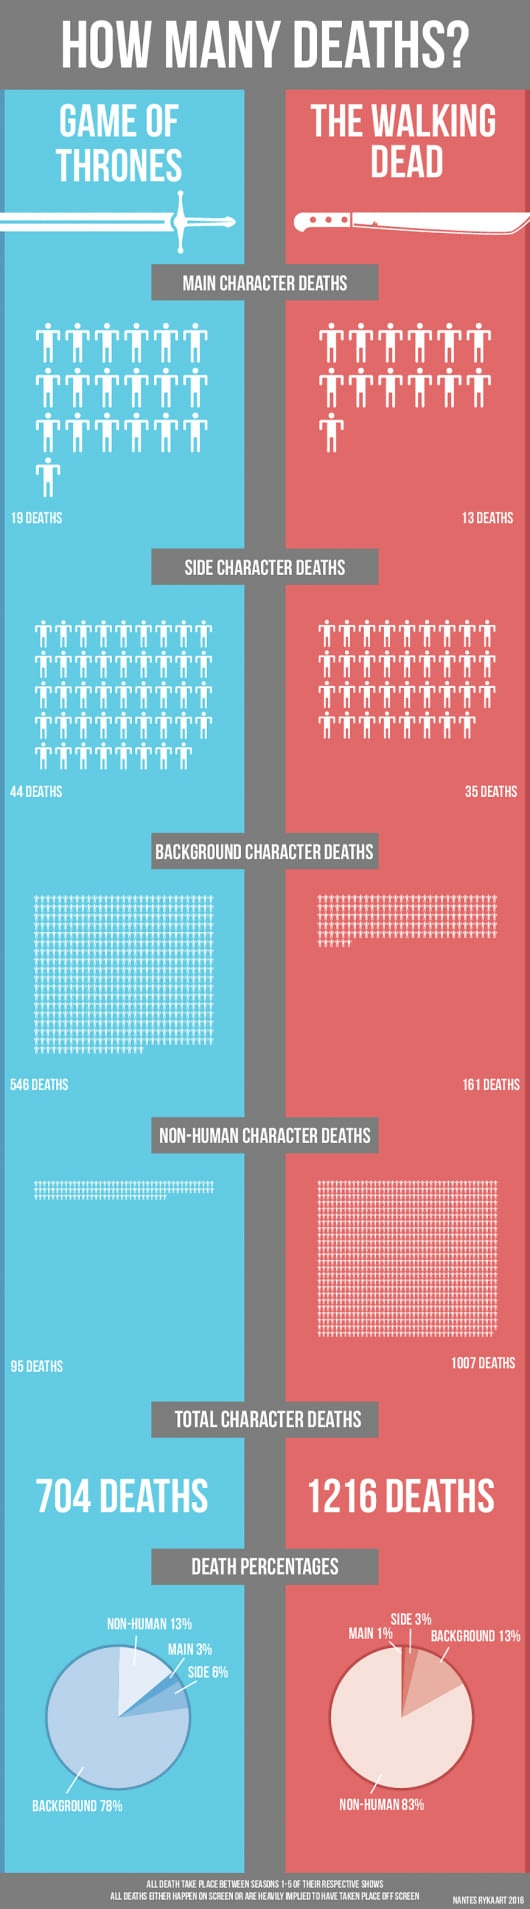 Death counts of The Walking Dead & Game of Thrones